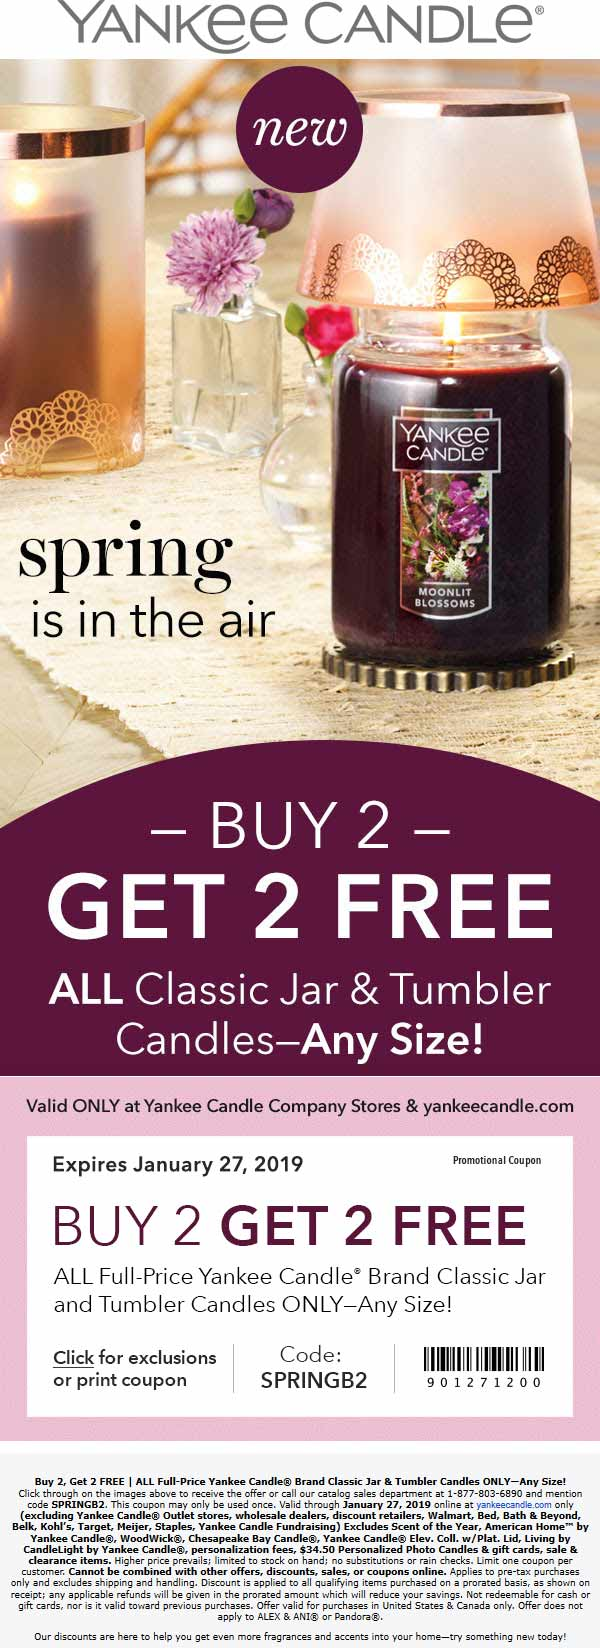 Yankee Candle Coupon July 2019 4-for-2 on candles at Yankee Candle, or online via promo code SPRINGB2